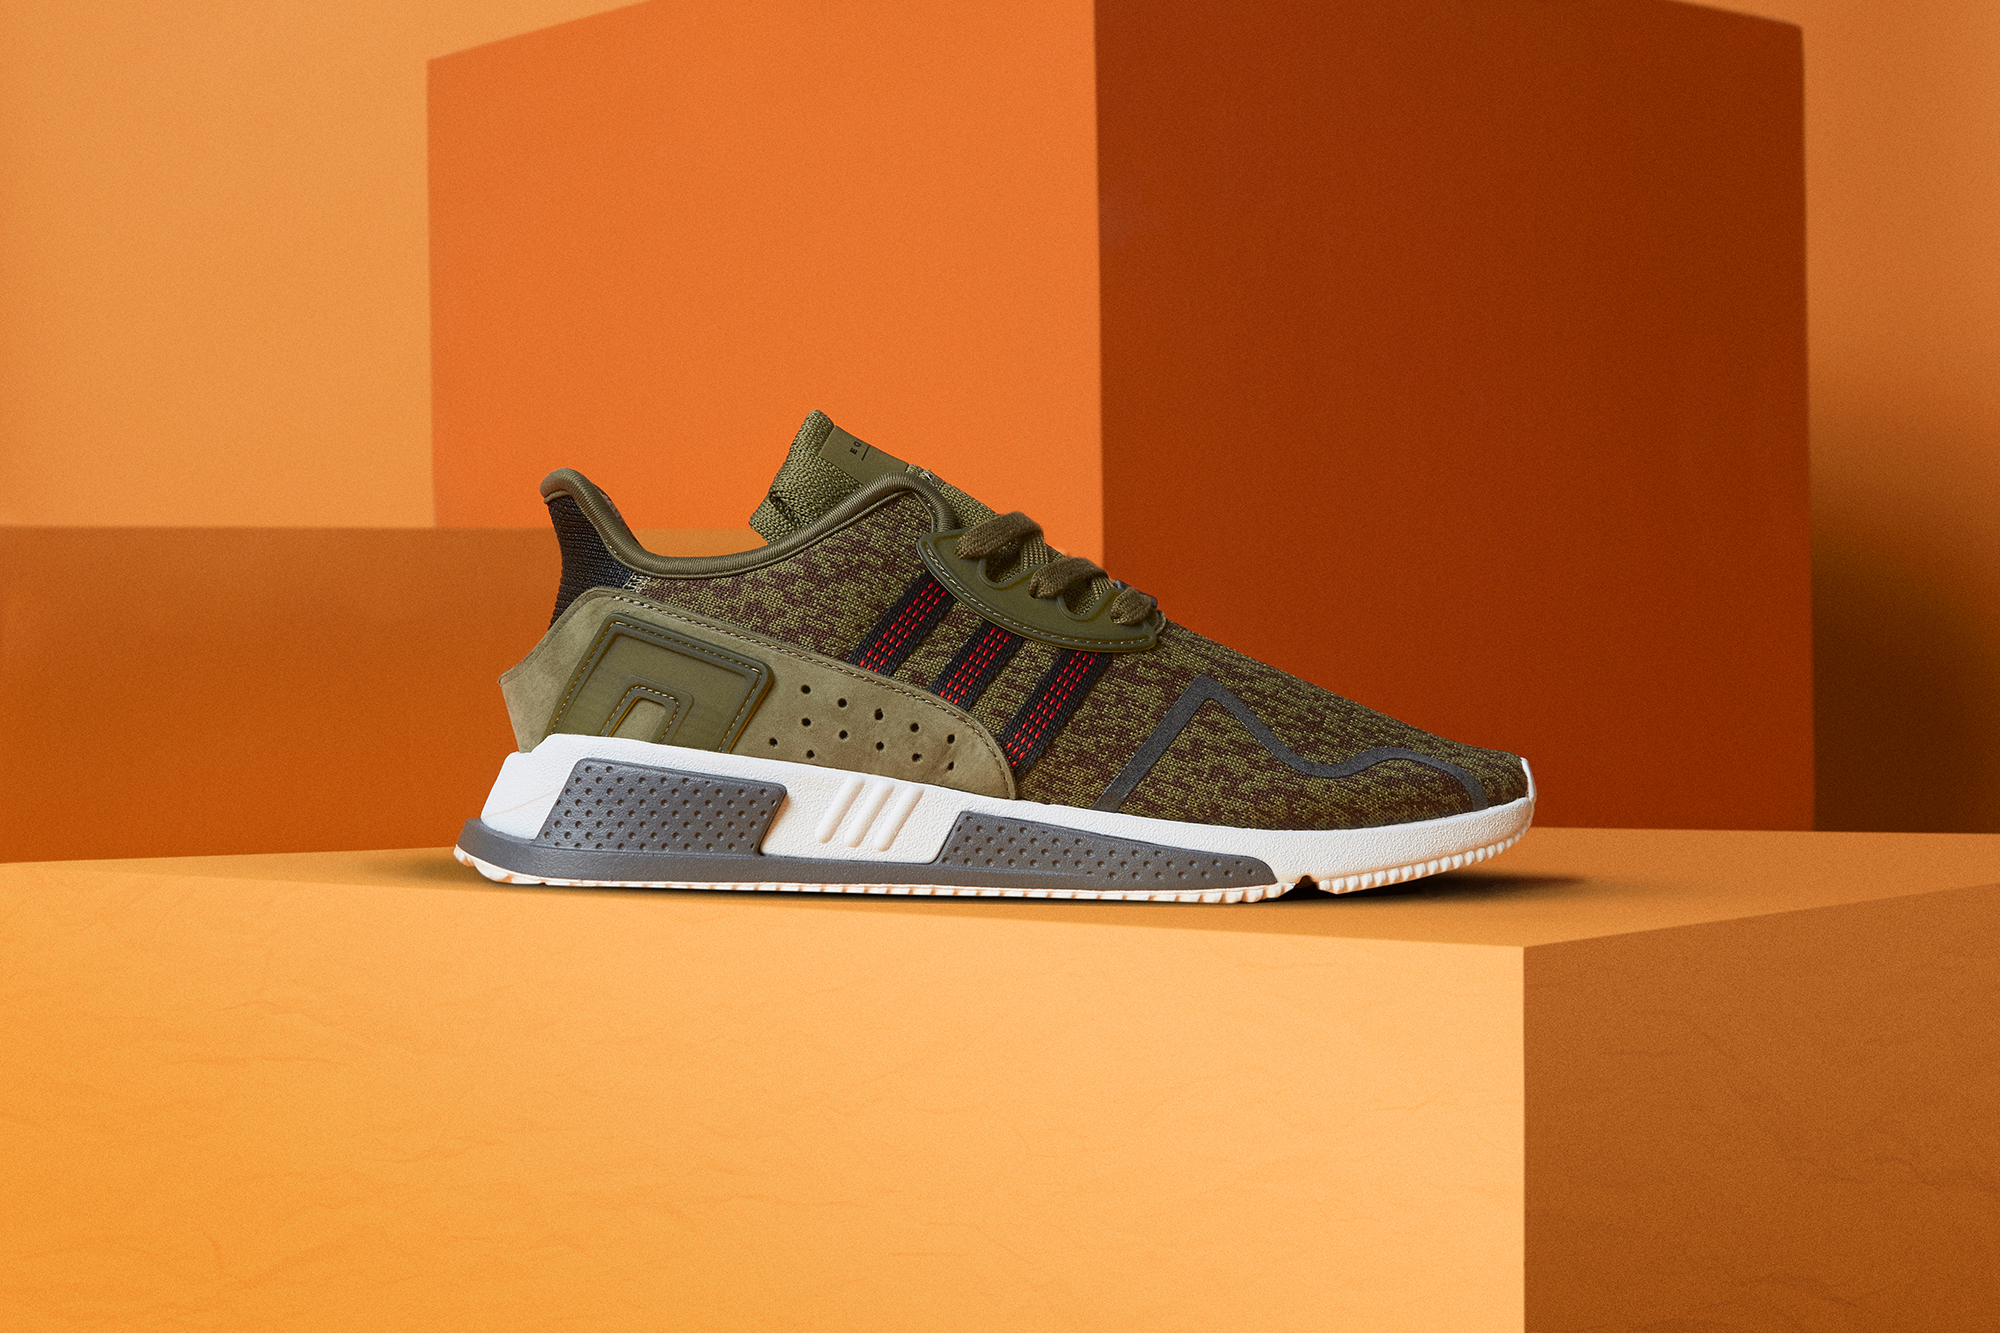 timeless design 84dc7 0cd28 adidas Originals EQT Cushion ADV 'Invisible' Pack - size ...